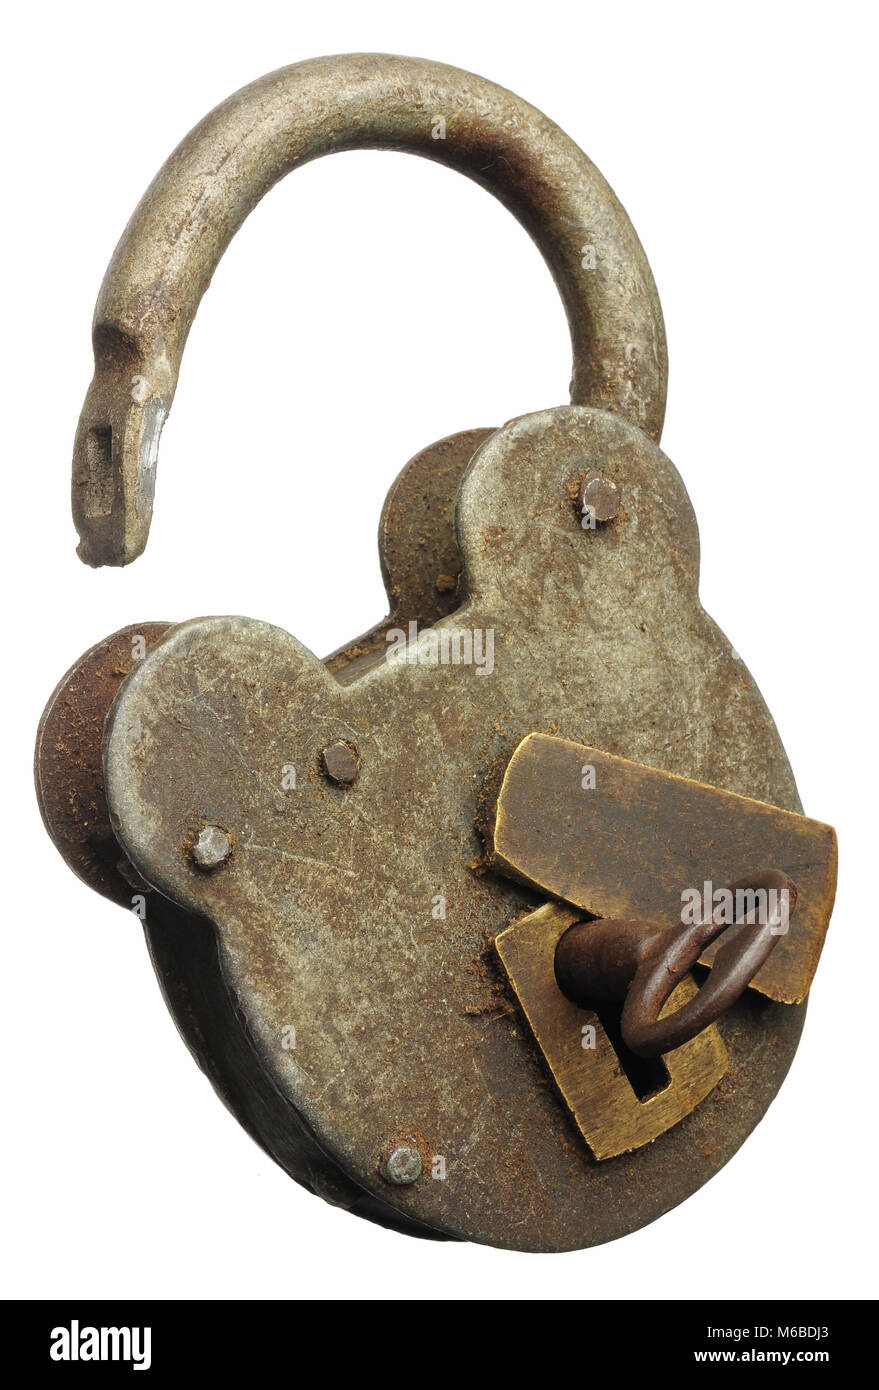 an vintage padlock unlocked and opened with key isolated on white - Stock Image